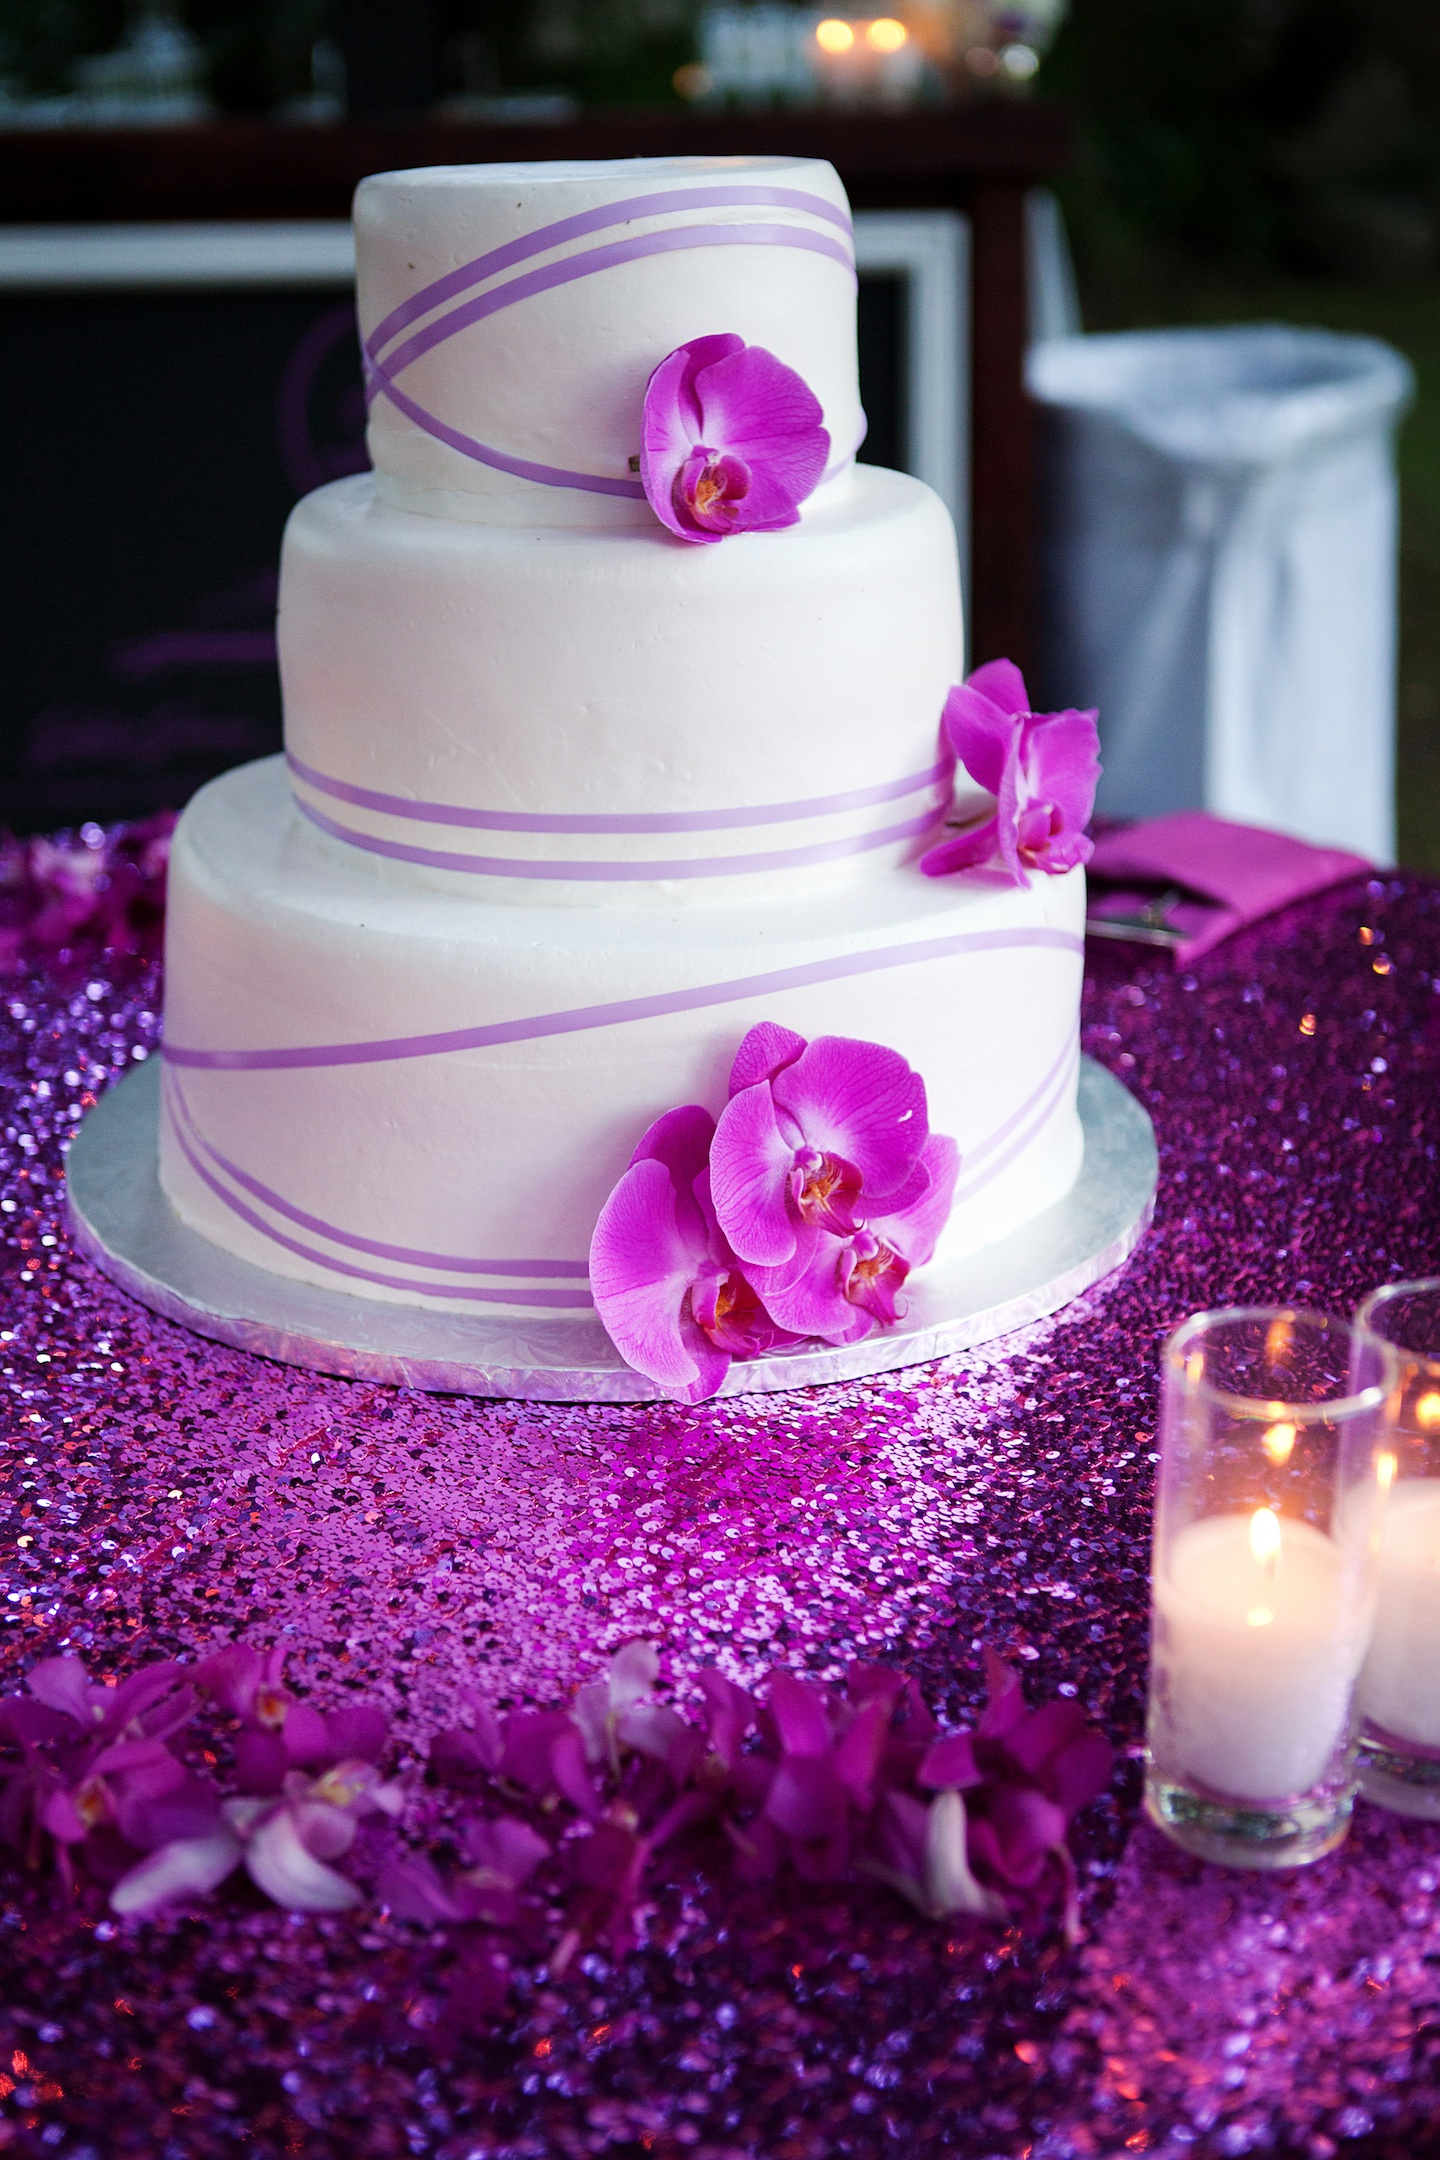 Elegant-winery-wedding-in-malibu-classic-wedding-cake-with-fuschia-orchids.original